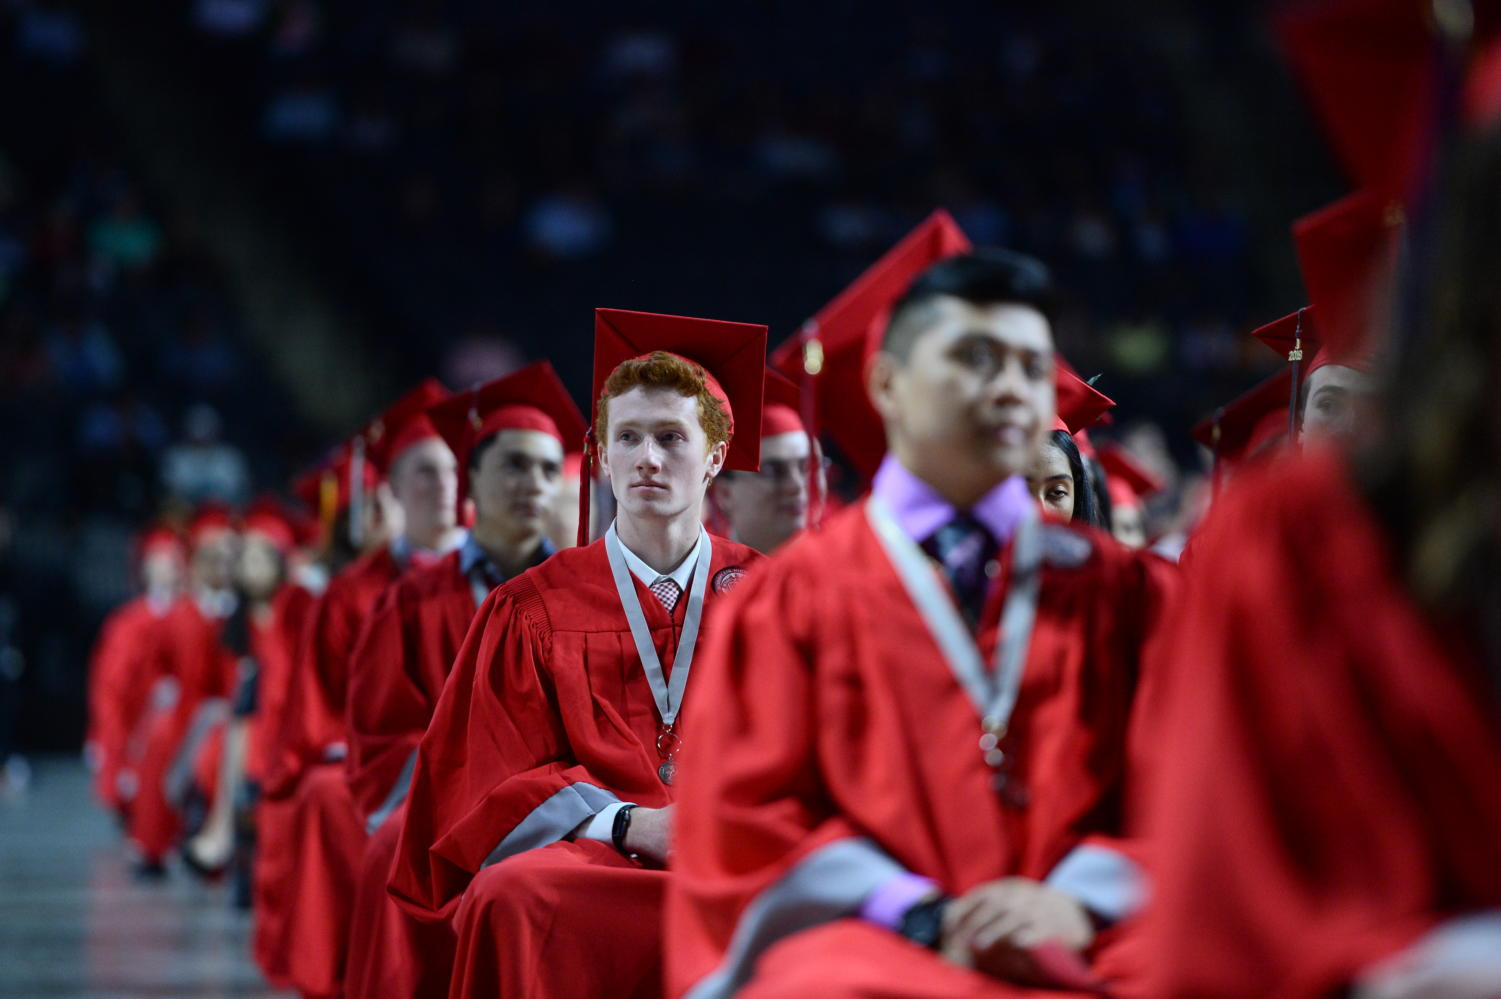 """Graduate Kyle Enright of the Class of 2018 sits among other students during the graduation ceremony at the Sears Centre Arena in Hoffman Estates. Last year's annual event was held on May 13. For the class of 2019, graduation will be held May 12 this year. """"Graduation is important because it's a stepping stone for bigger and better things-- like college, trade school or the army,"""" Senior Bryan Silva said."""